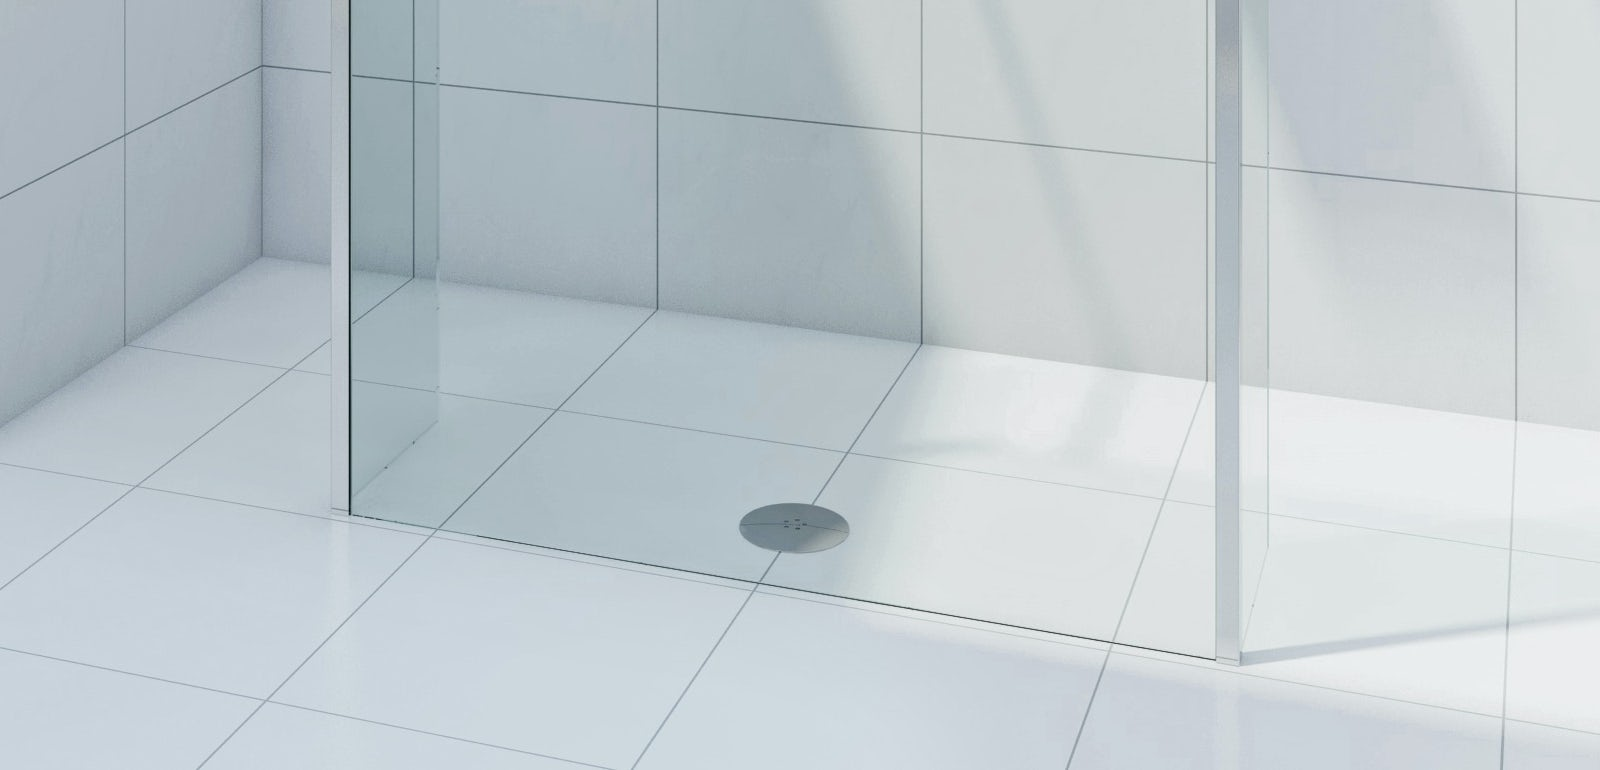 5 reasons to waterproof your bathroom | VictoriaPlum.com